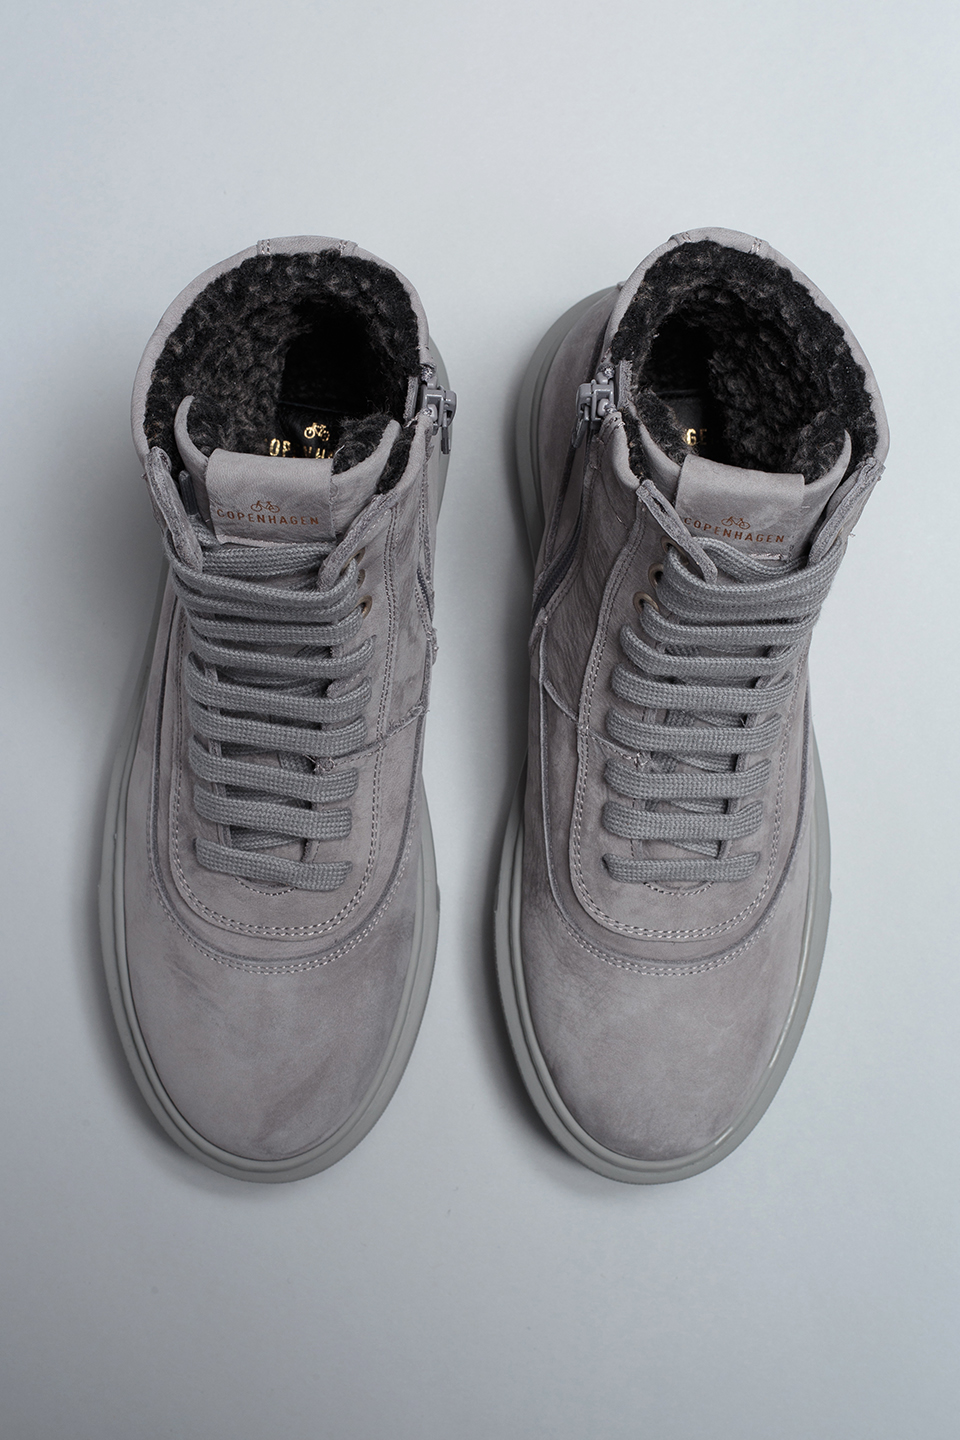 CPH456 nabuc light grey - alternative 2